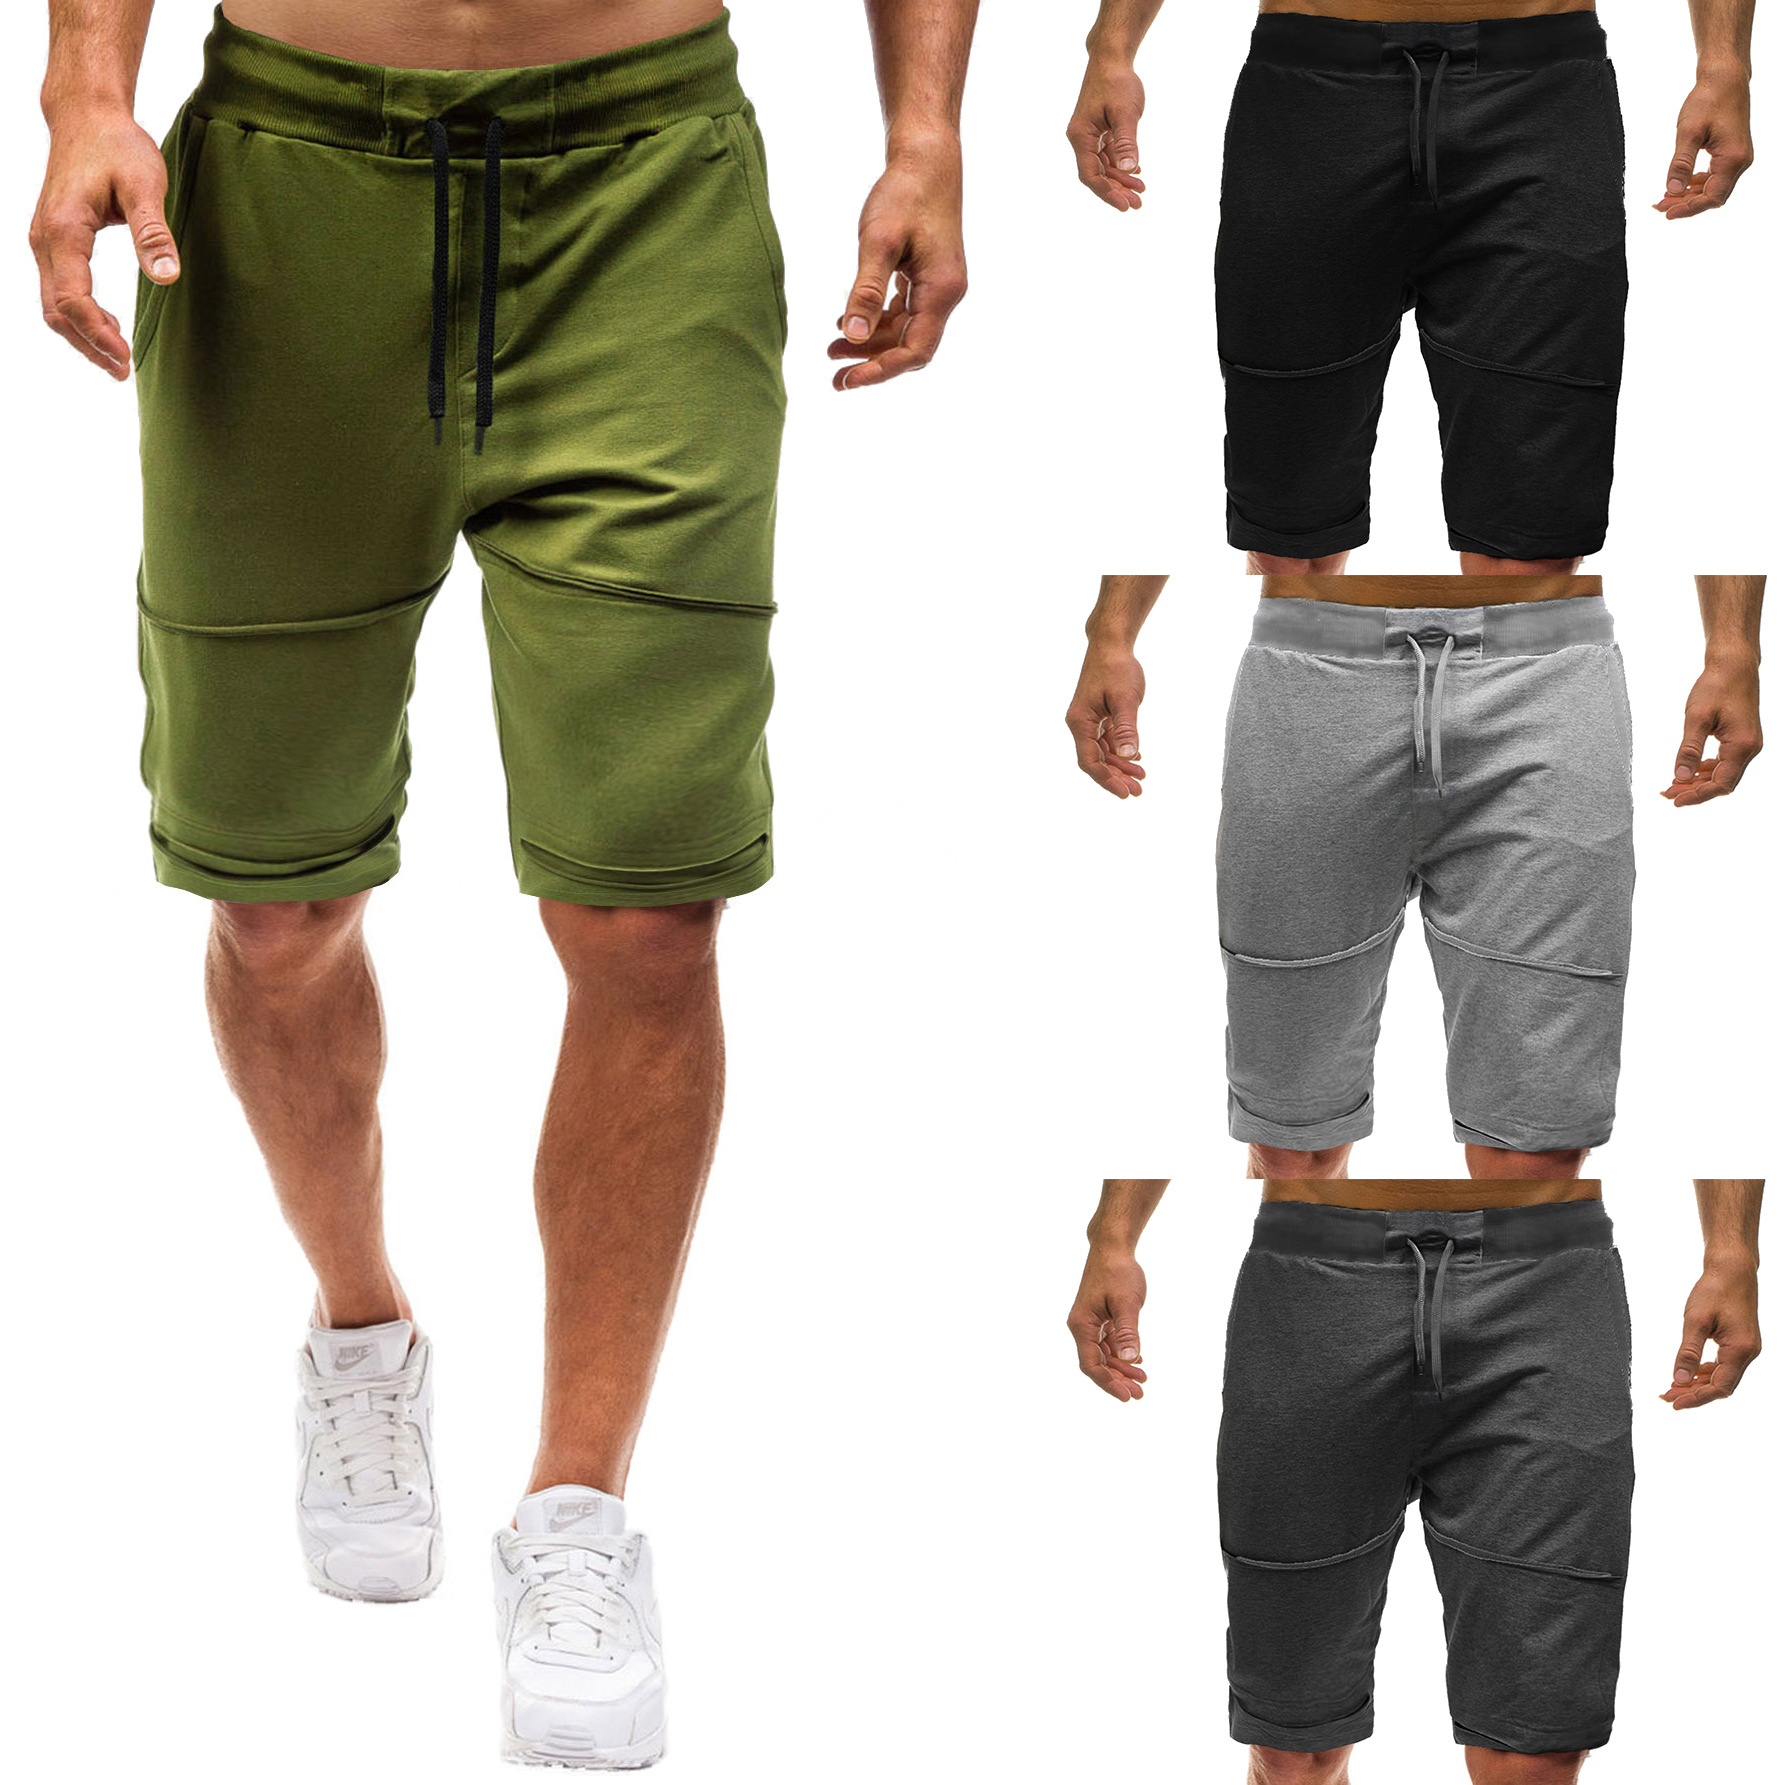 Shorts Men's 2019 New Style Pants Large Size Men With Holes Shorts Men's Sports Casual Shorts 3423